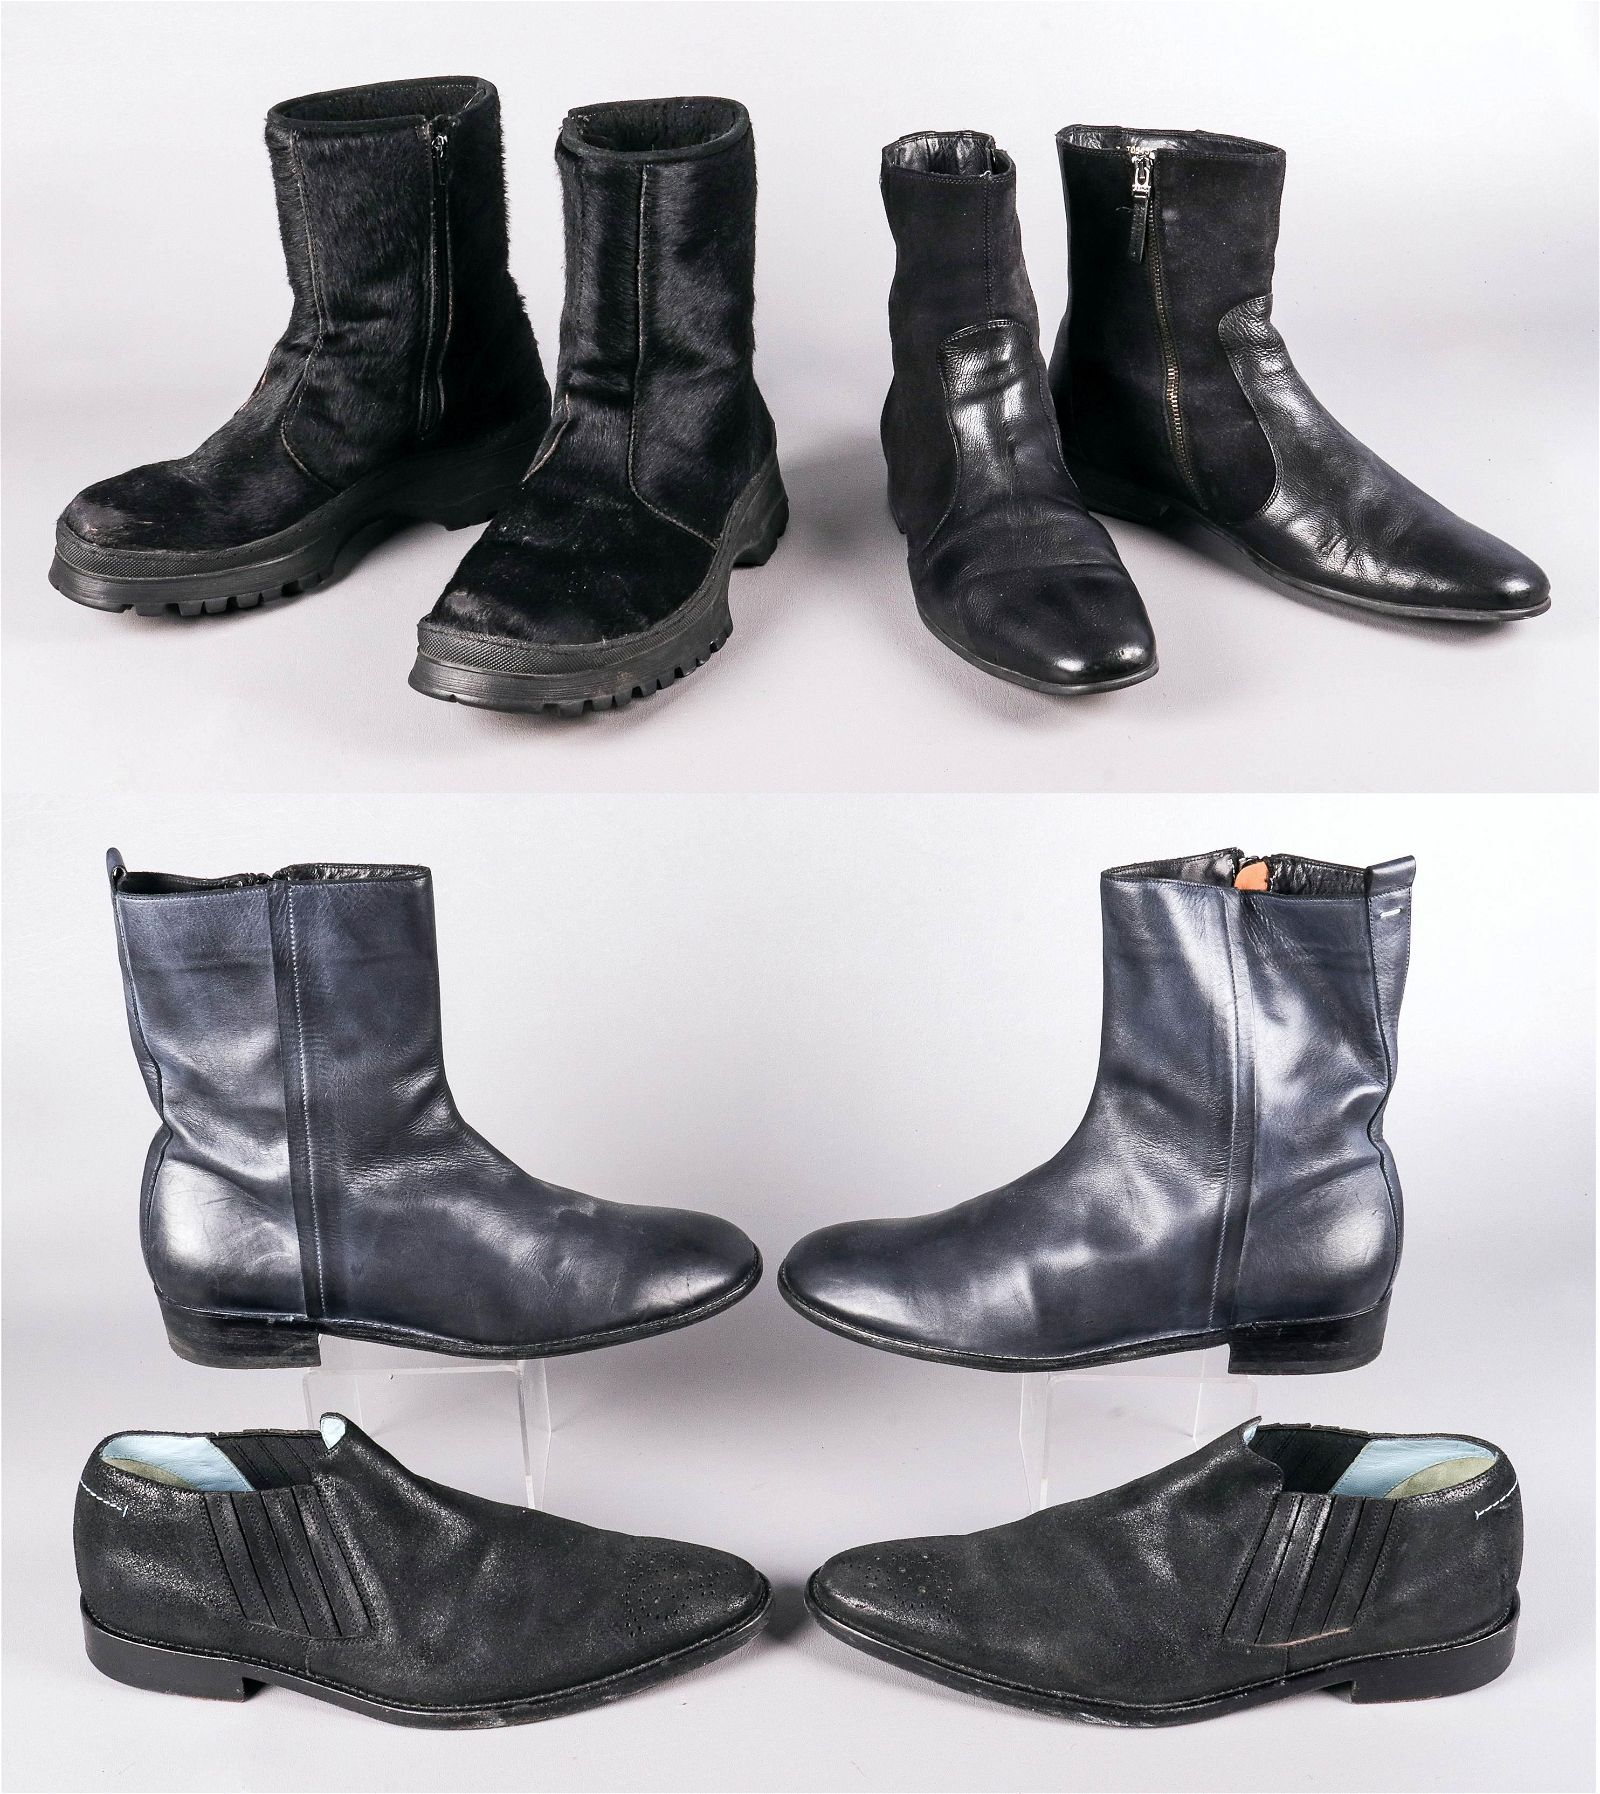 (4) Pair Designer Boots and Shoes